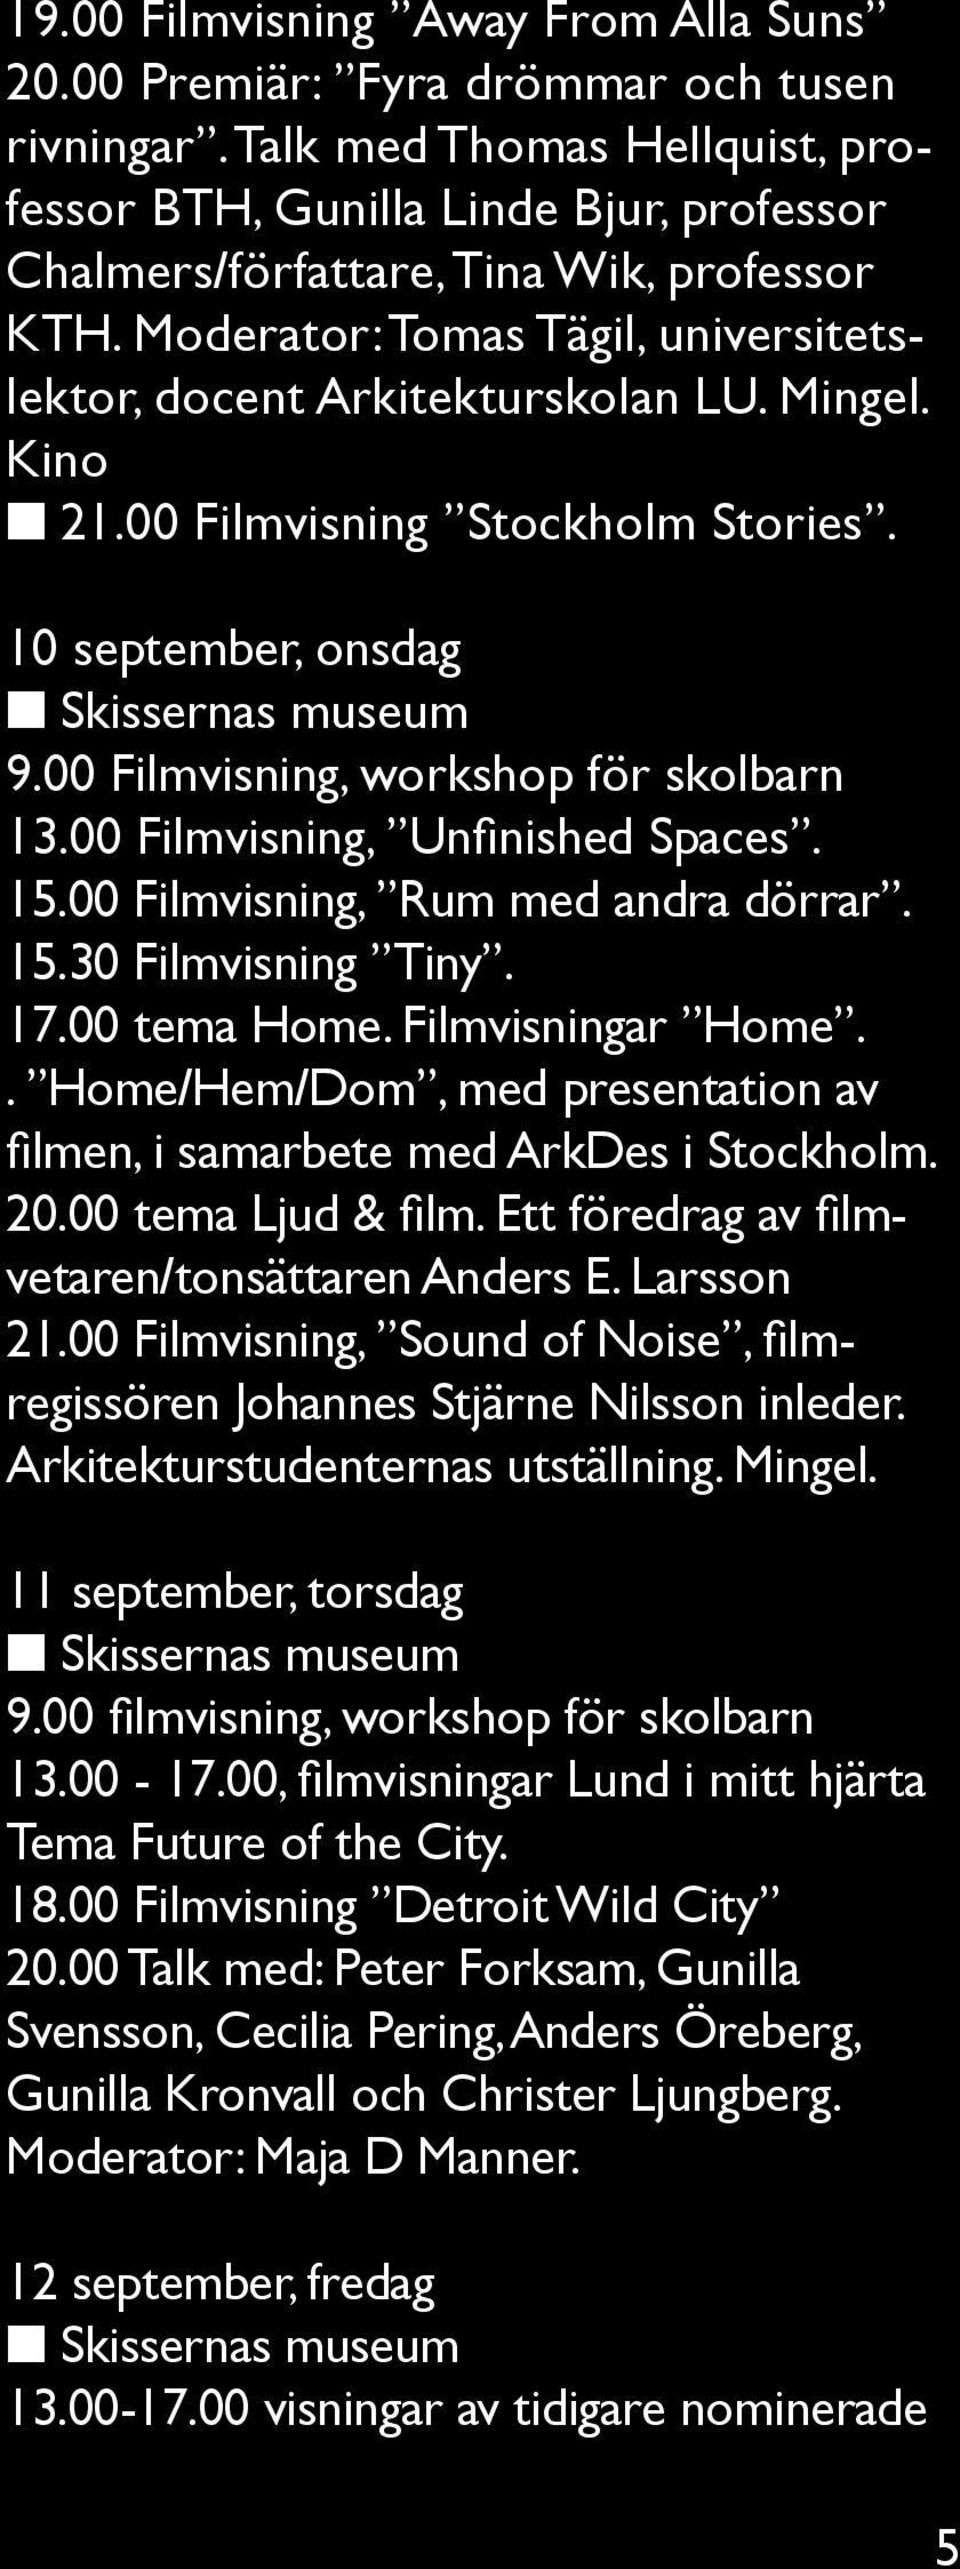 Kino n 21.00 Filmvisning Stockholm Stories. 10 september, onsdag n Skissernas museum 9.00 Filmvisning, workshop för skolbarn 13.00 Filmvisning, Unfinished Spaces. 15.